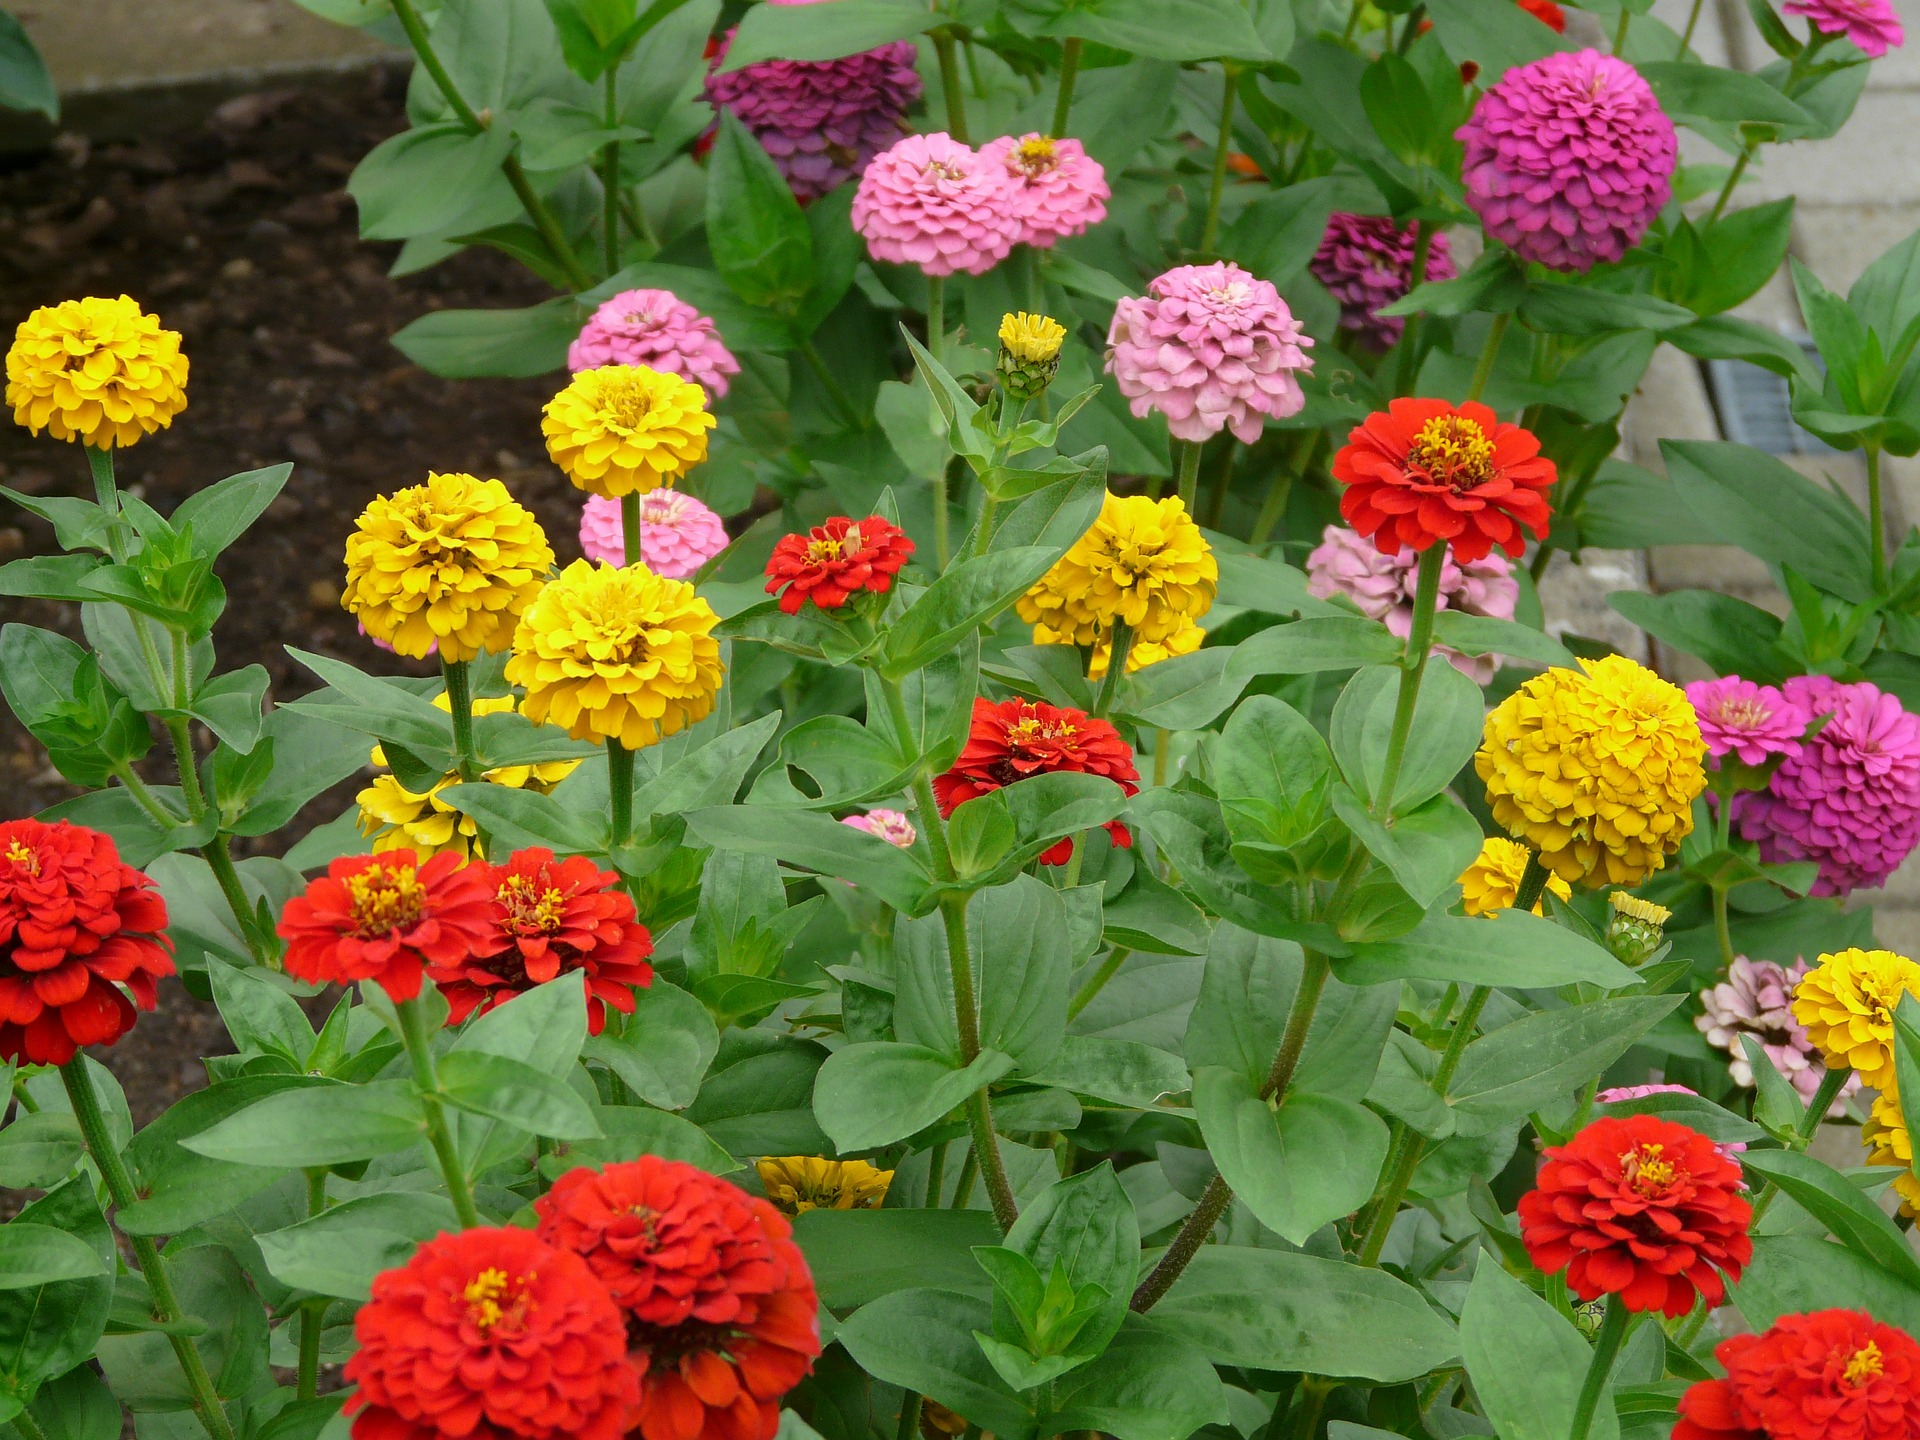 Zinnias how to plant grow and care for zinnia flowers the old zinnias how to plant grow and care for zinnia flowers the old farmers almanac izmirmasajfo